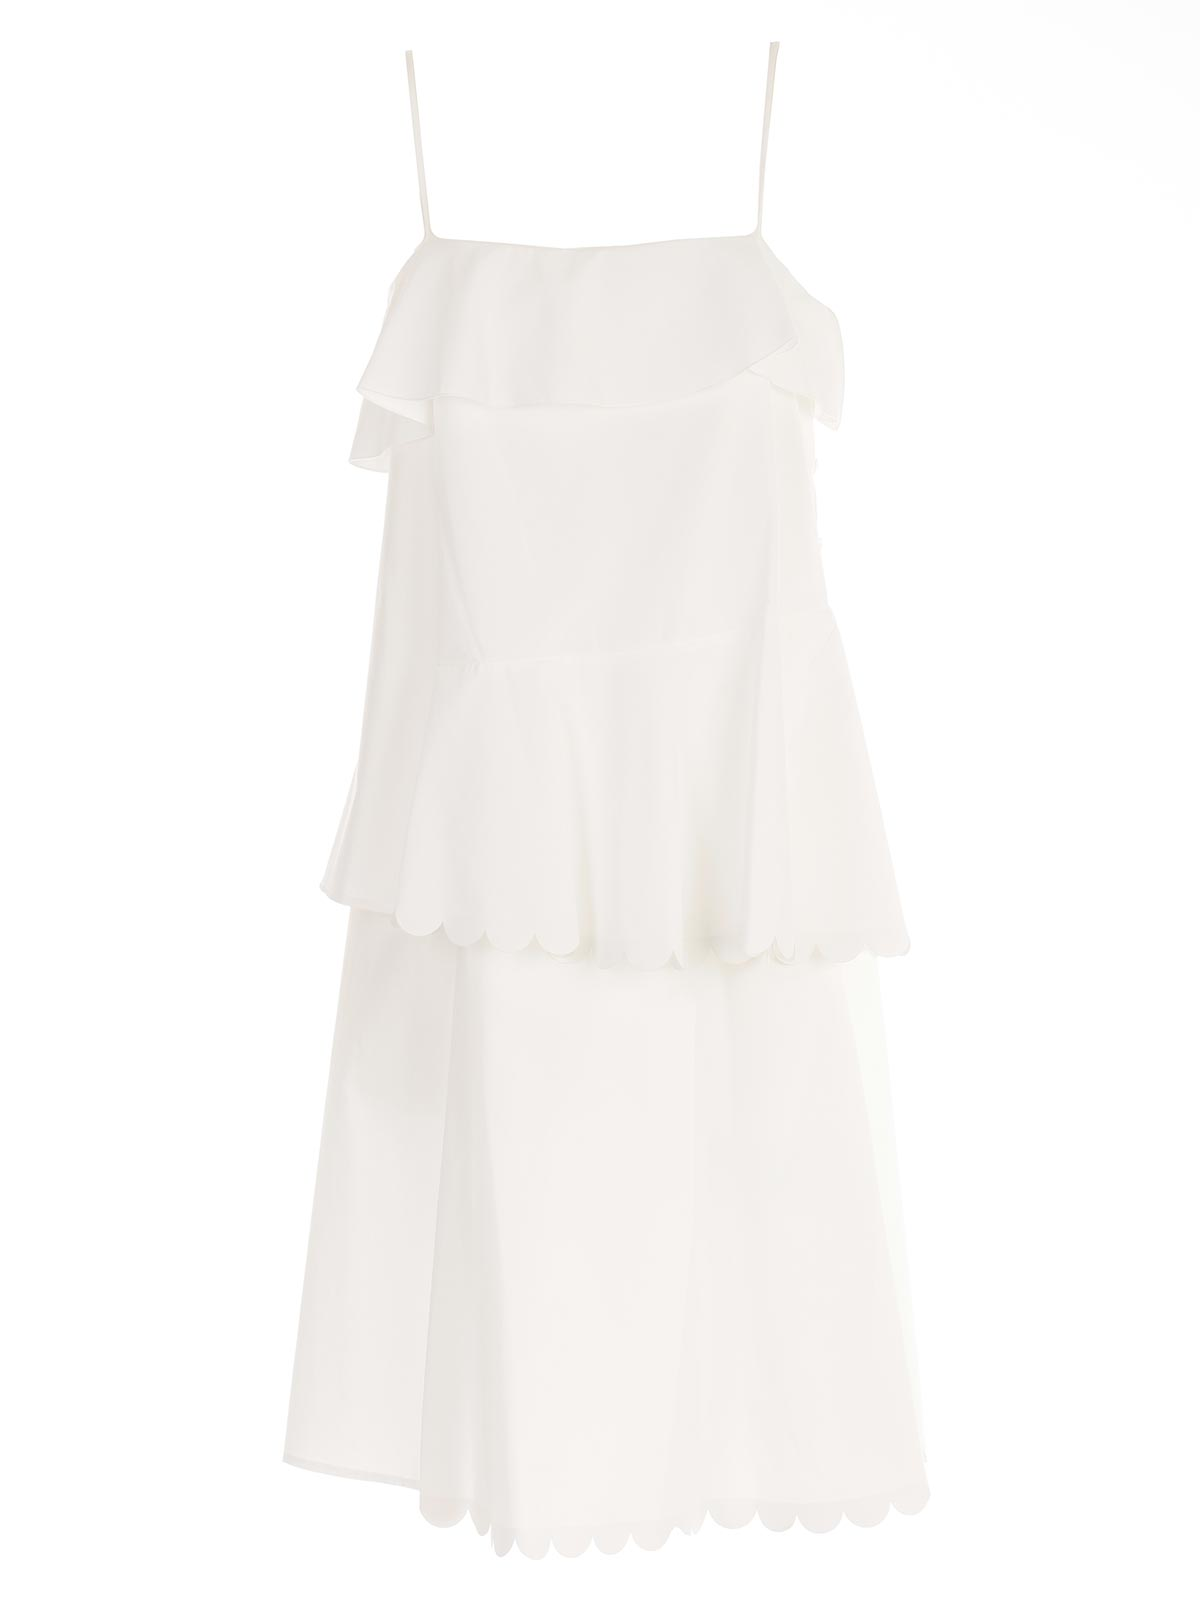 Picture of SEEBYCHLOE DRESS